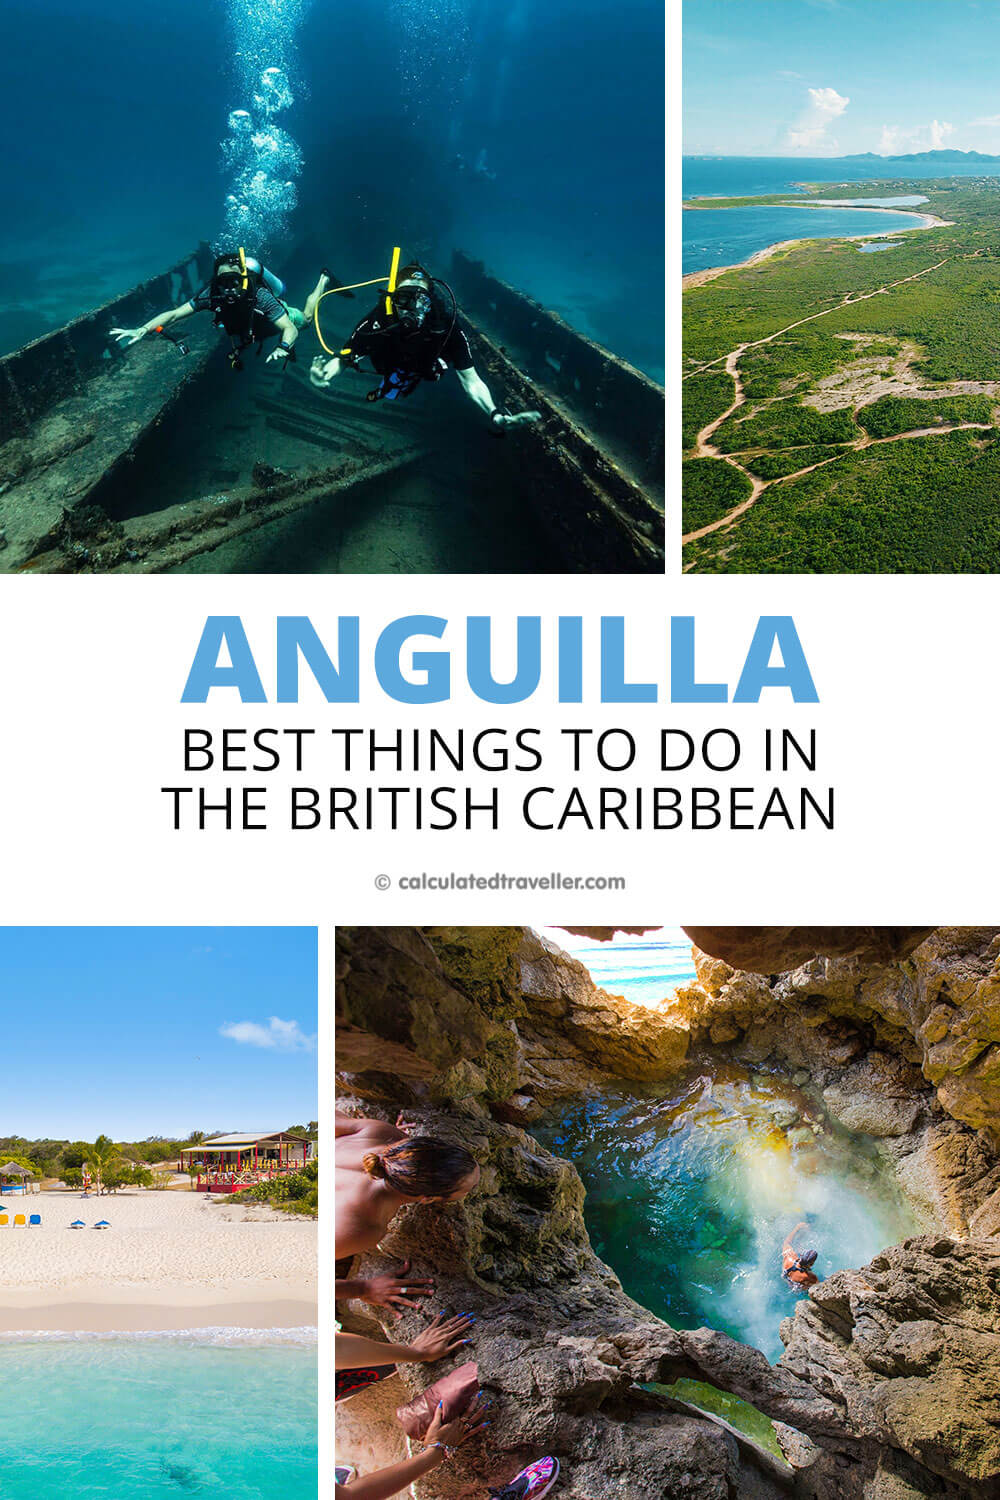 The Best Things To Do in Anguilla, British Caribbean